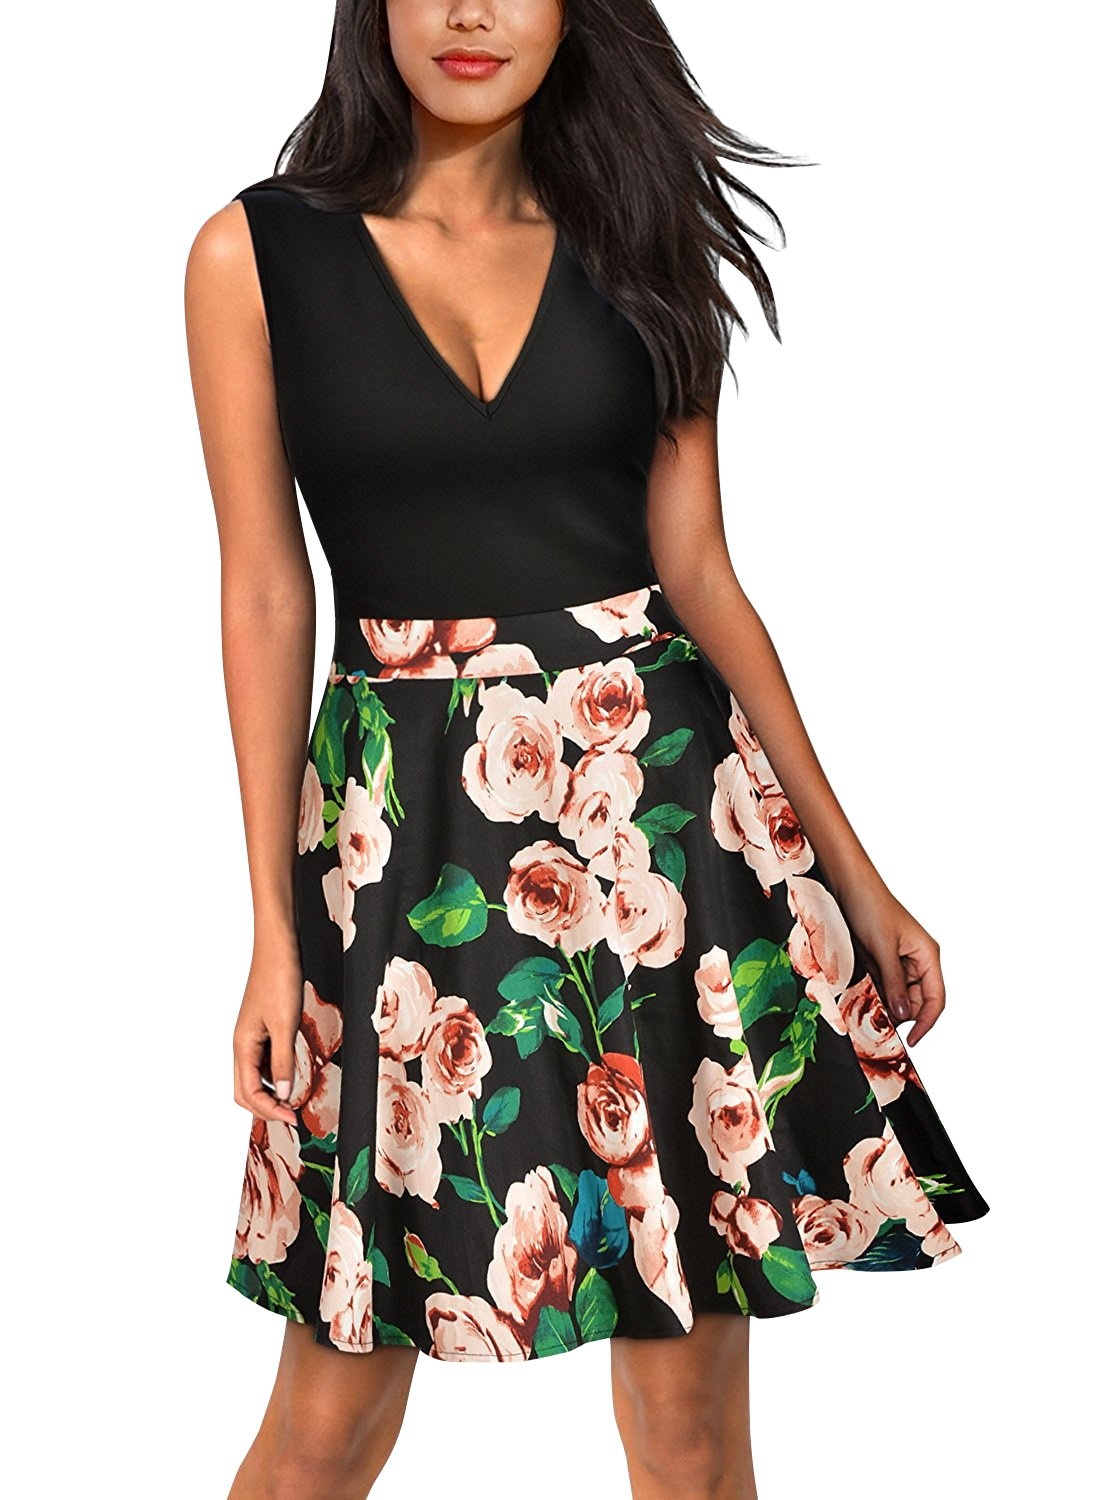 Yidarton Women's Summer Casual V Neck Flare Floral Contrast Evening Party Short Mini Dress Black S by Yidarton (Image #1)